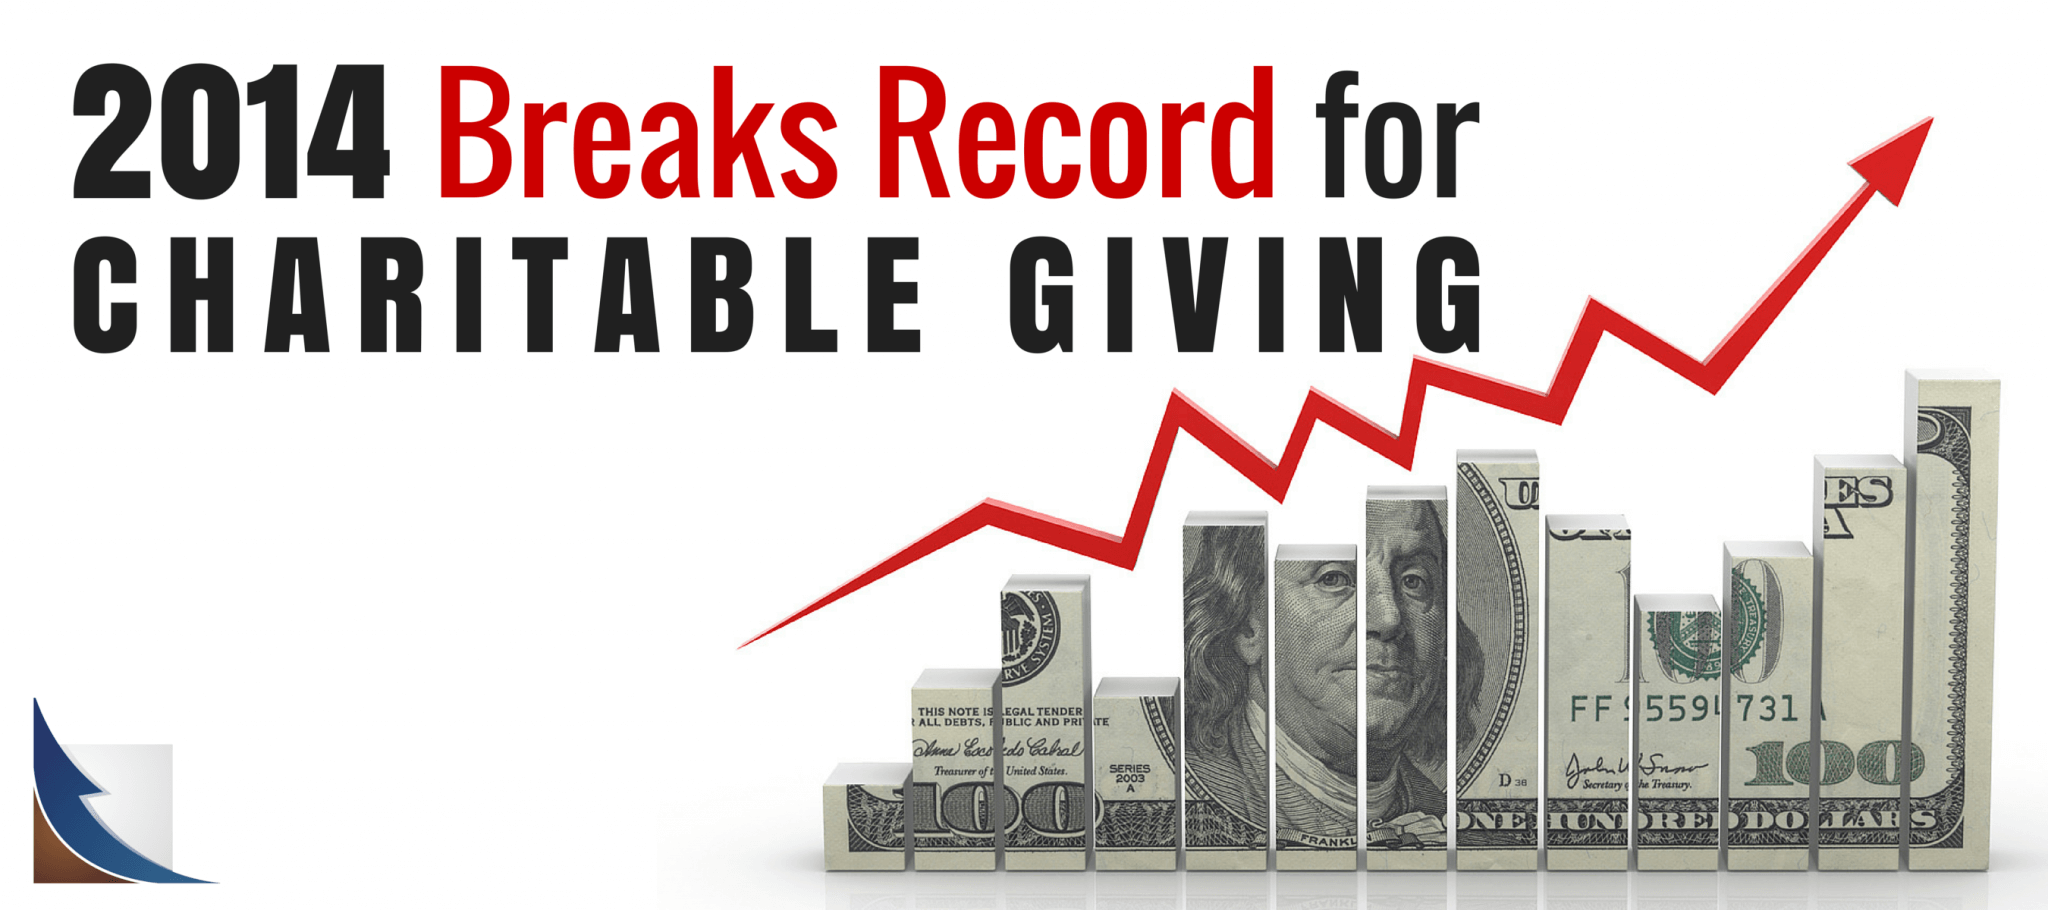 2014 Breaks Records for Charity Giving